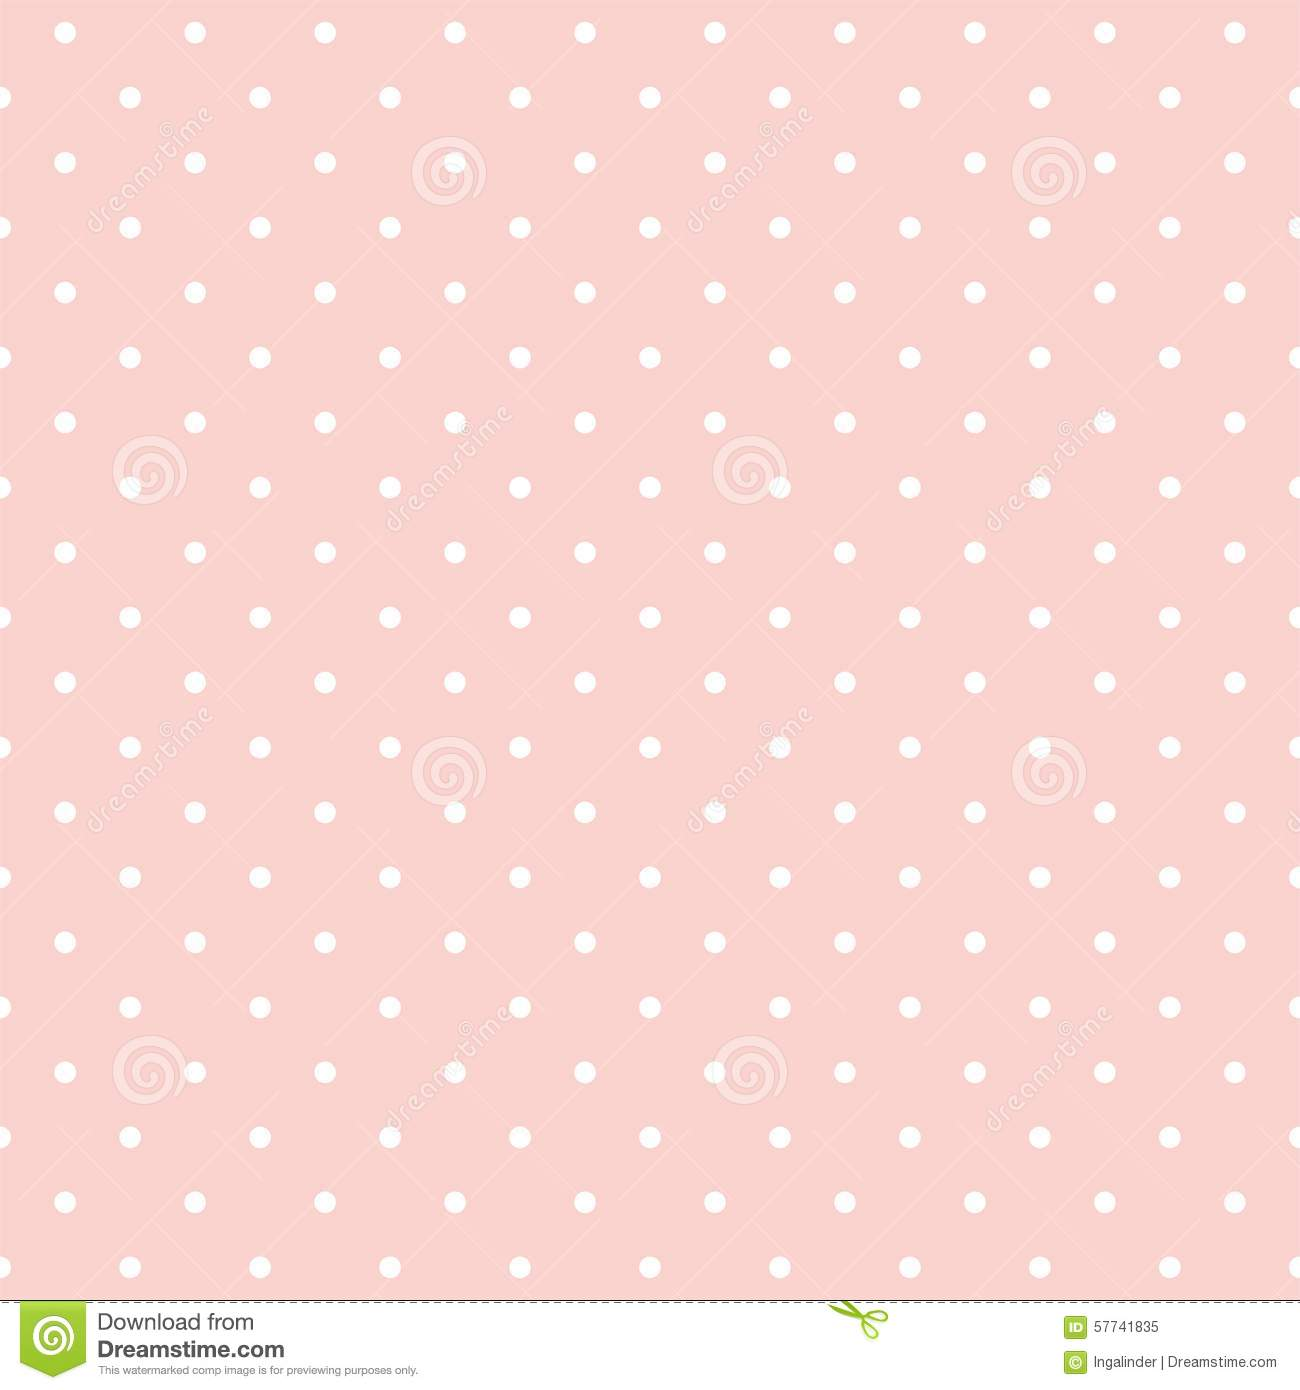 Baby Girl Nursery Wallpaper Borders Tile Vector Pattern With White On Pink Background Stock